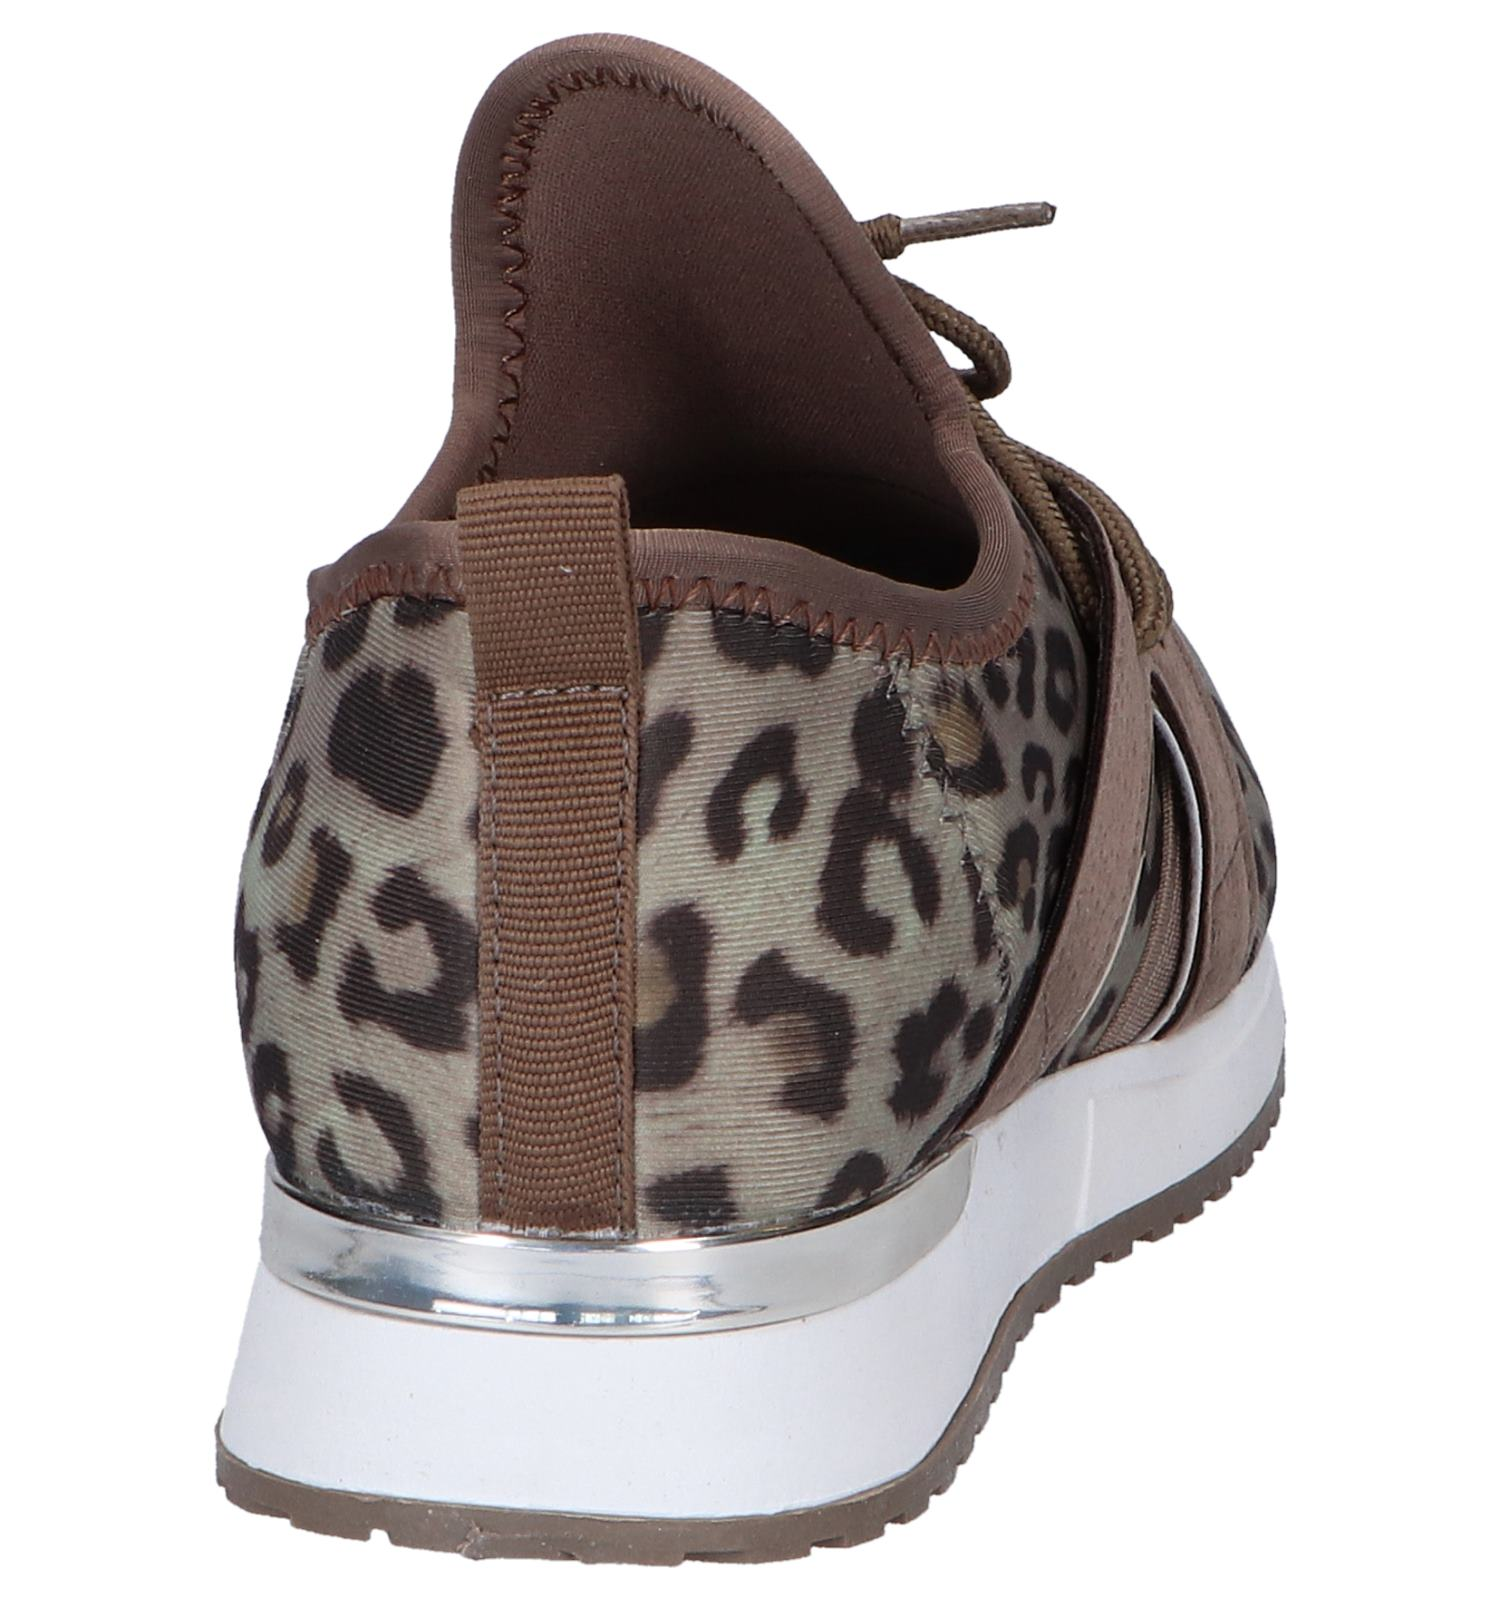 Slip Sneakers Shoecolate Taupe Taupe on on Slip Shoecolate Sneakers SzUVqpMG